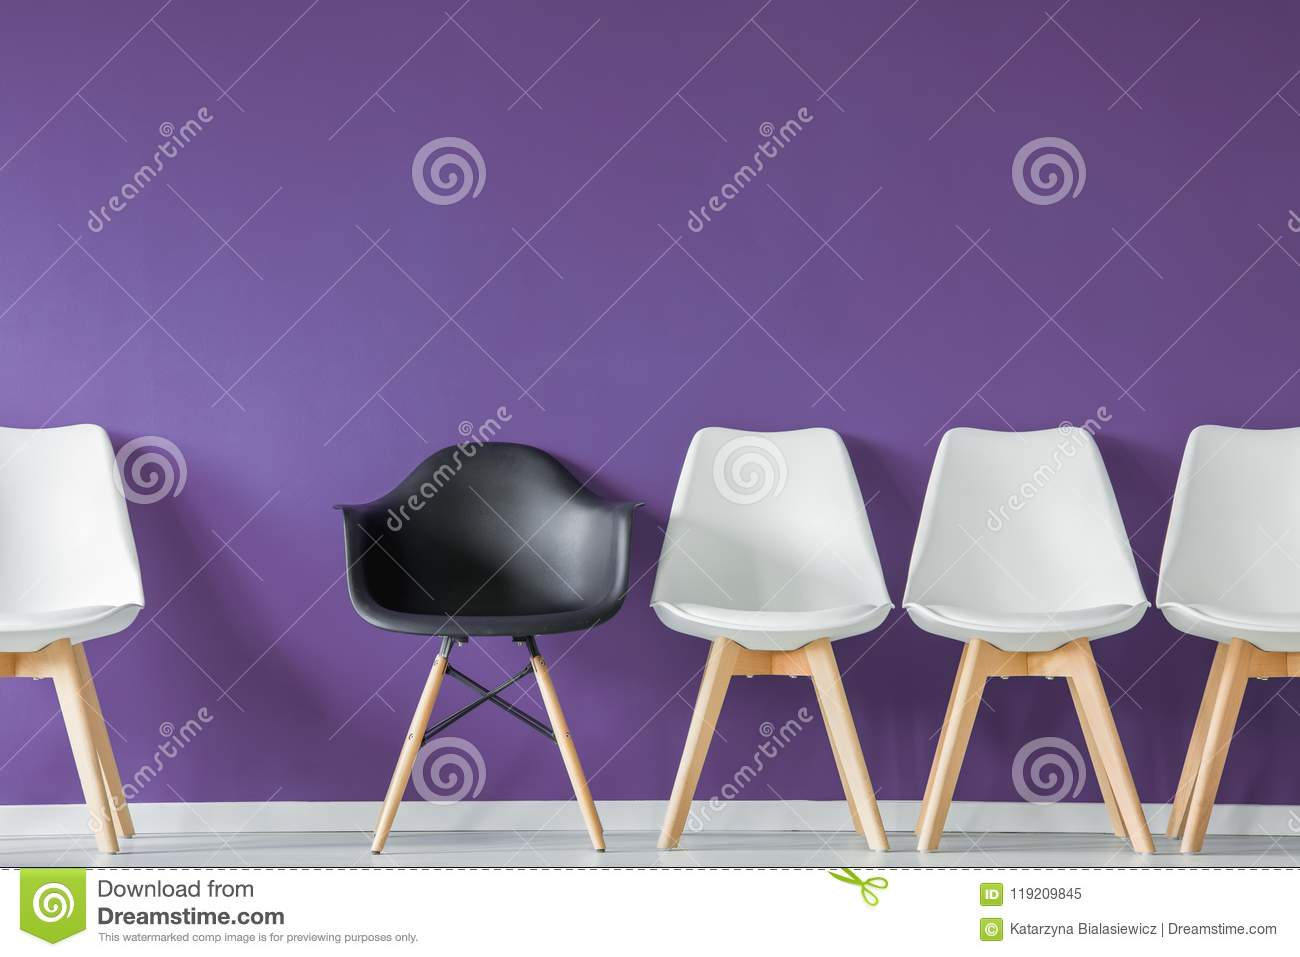 Download Black Chair In Row Stock Image. Image Of Furniture, Plastic    119209845